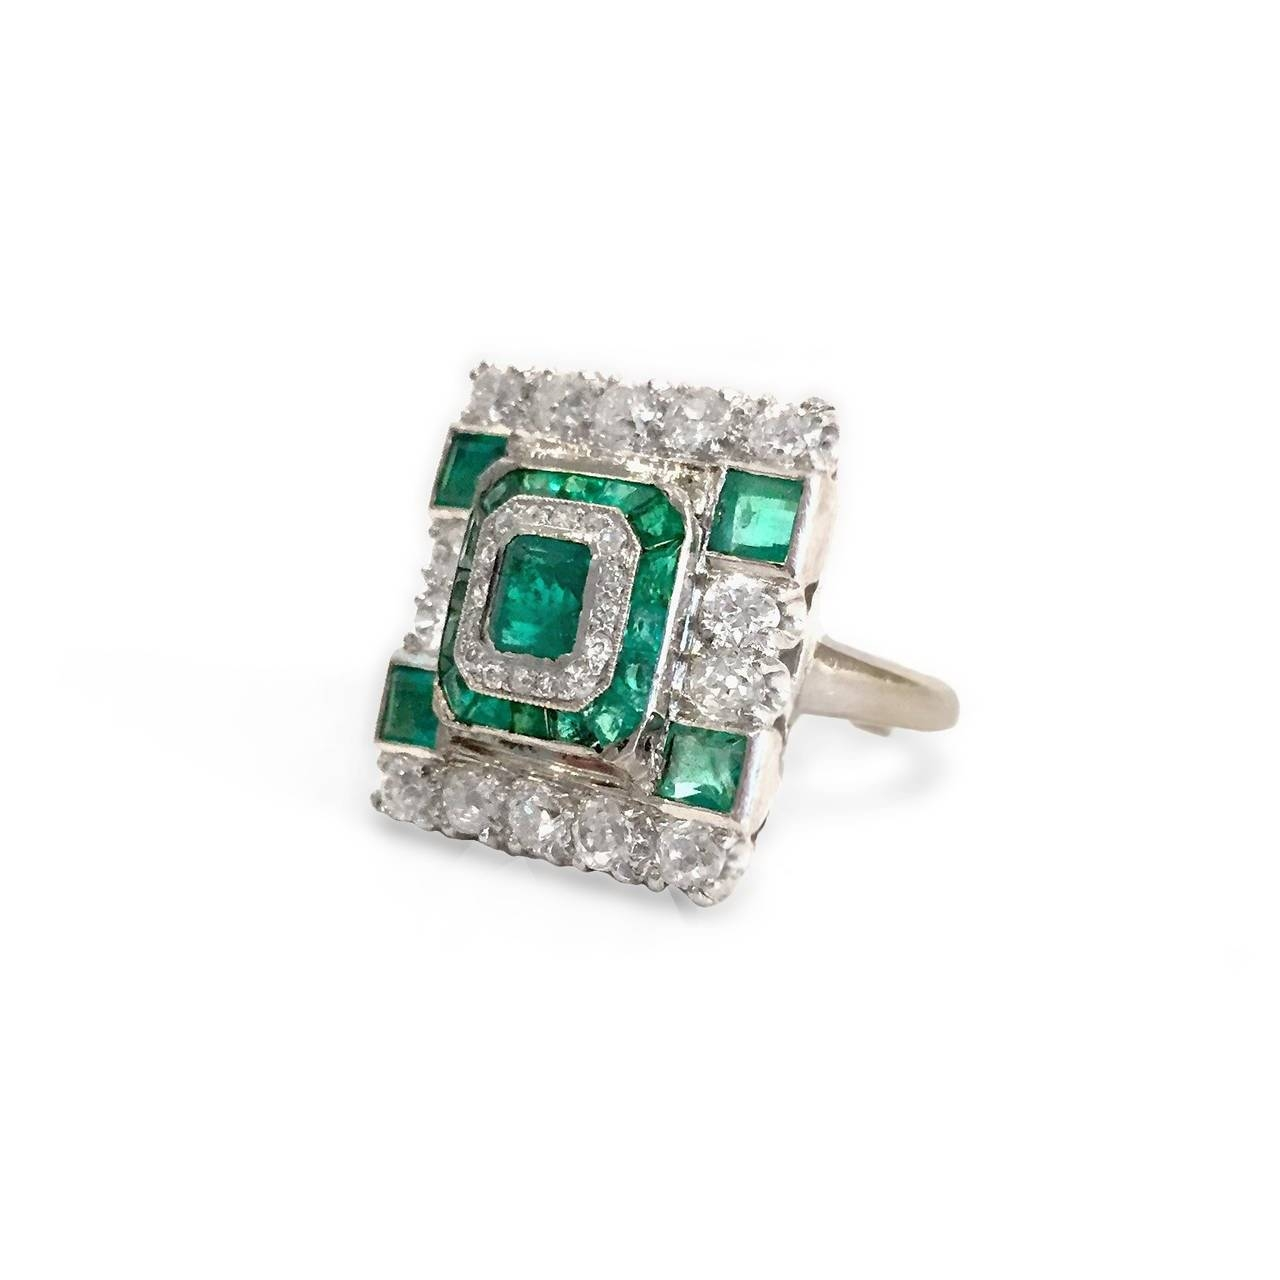 Art Deco Princess Cut Emerald Diamond Gold Ring At 1Stdibs For Princess Cut Emerald Engagement Rings (View 5 of 15)